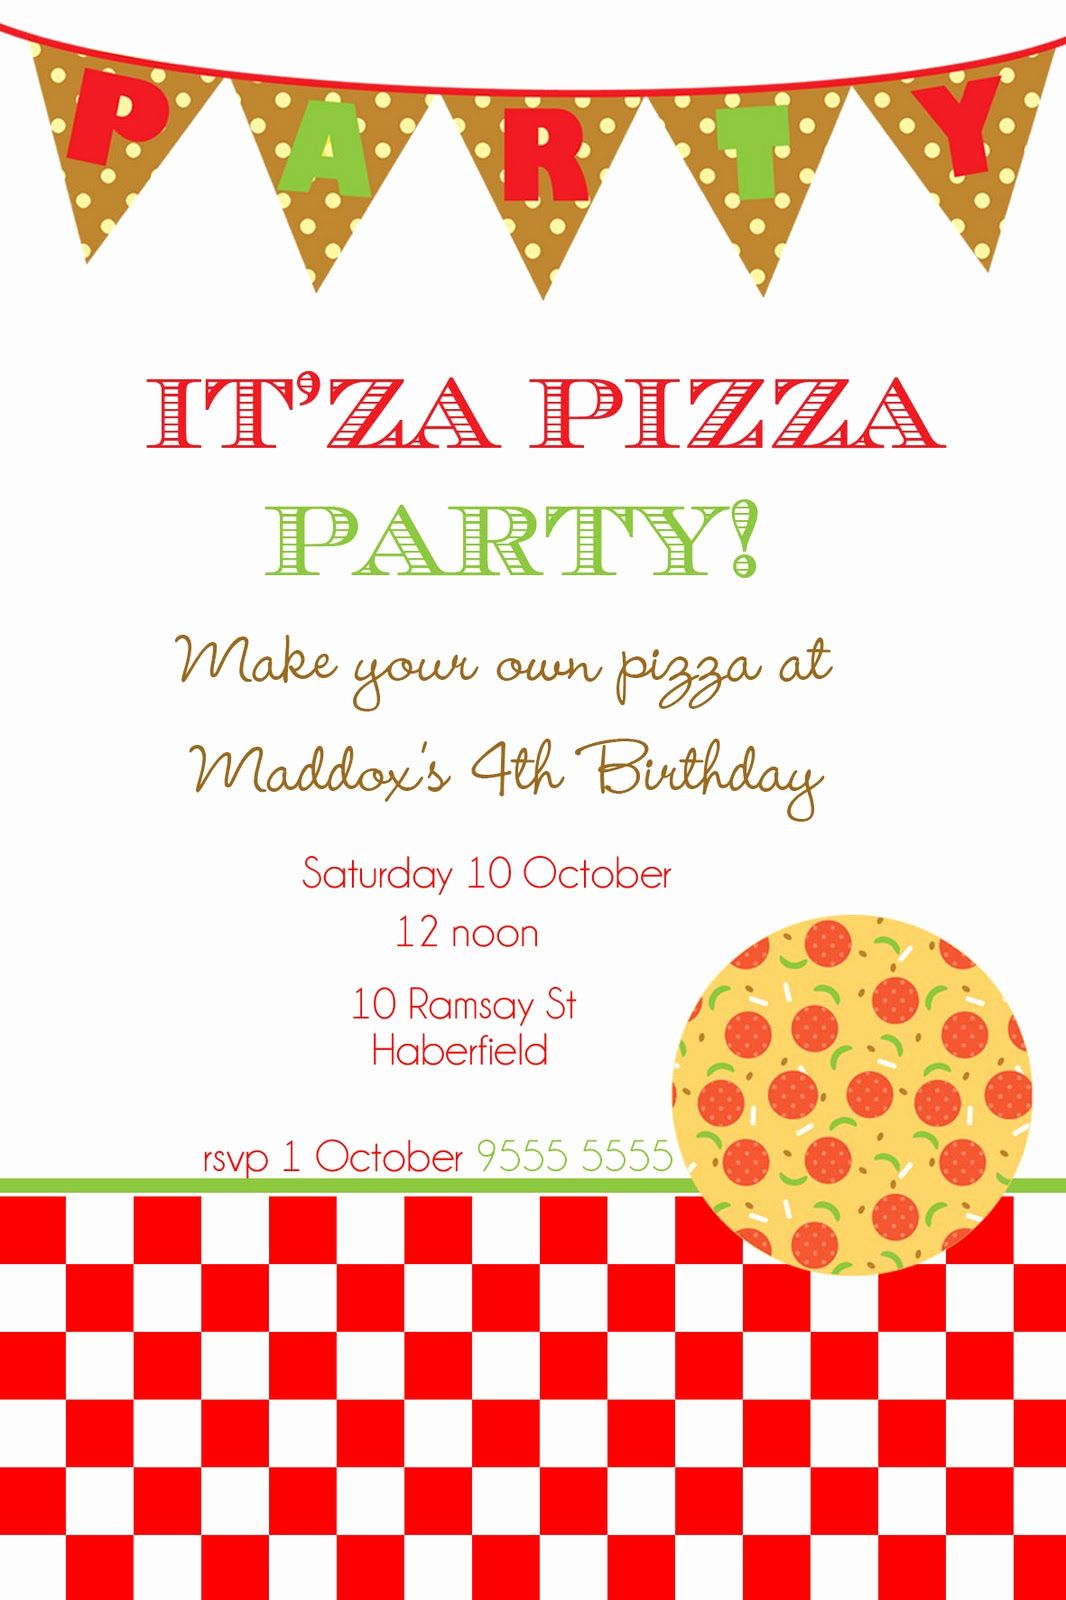 Pizza Party Invitation Template Free Best Of Blank Pizza Party Invitation Party Invite Template Pizza Party Invitations Free Printable Birthday Invitations Pizza party invitation template free